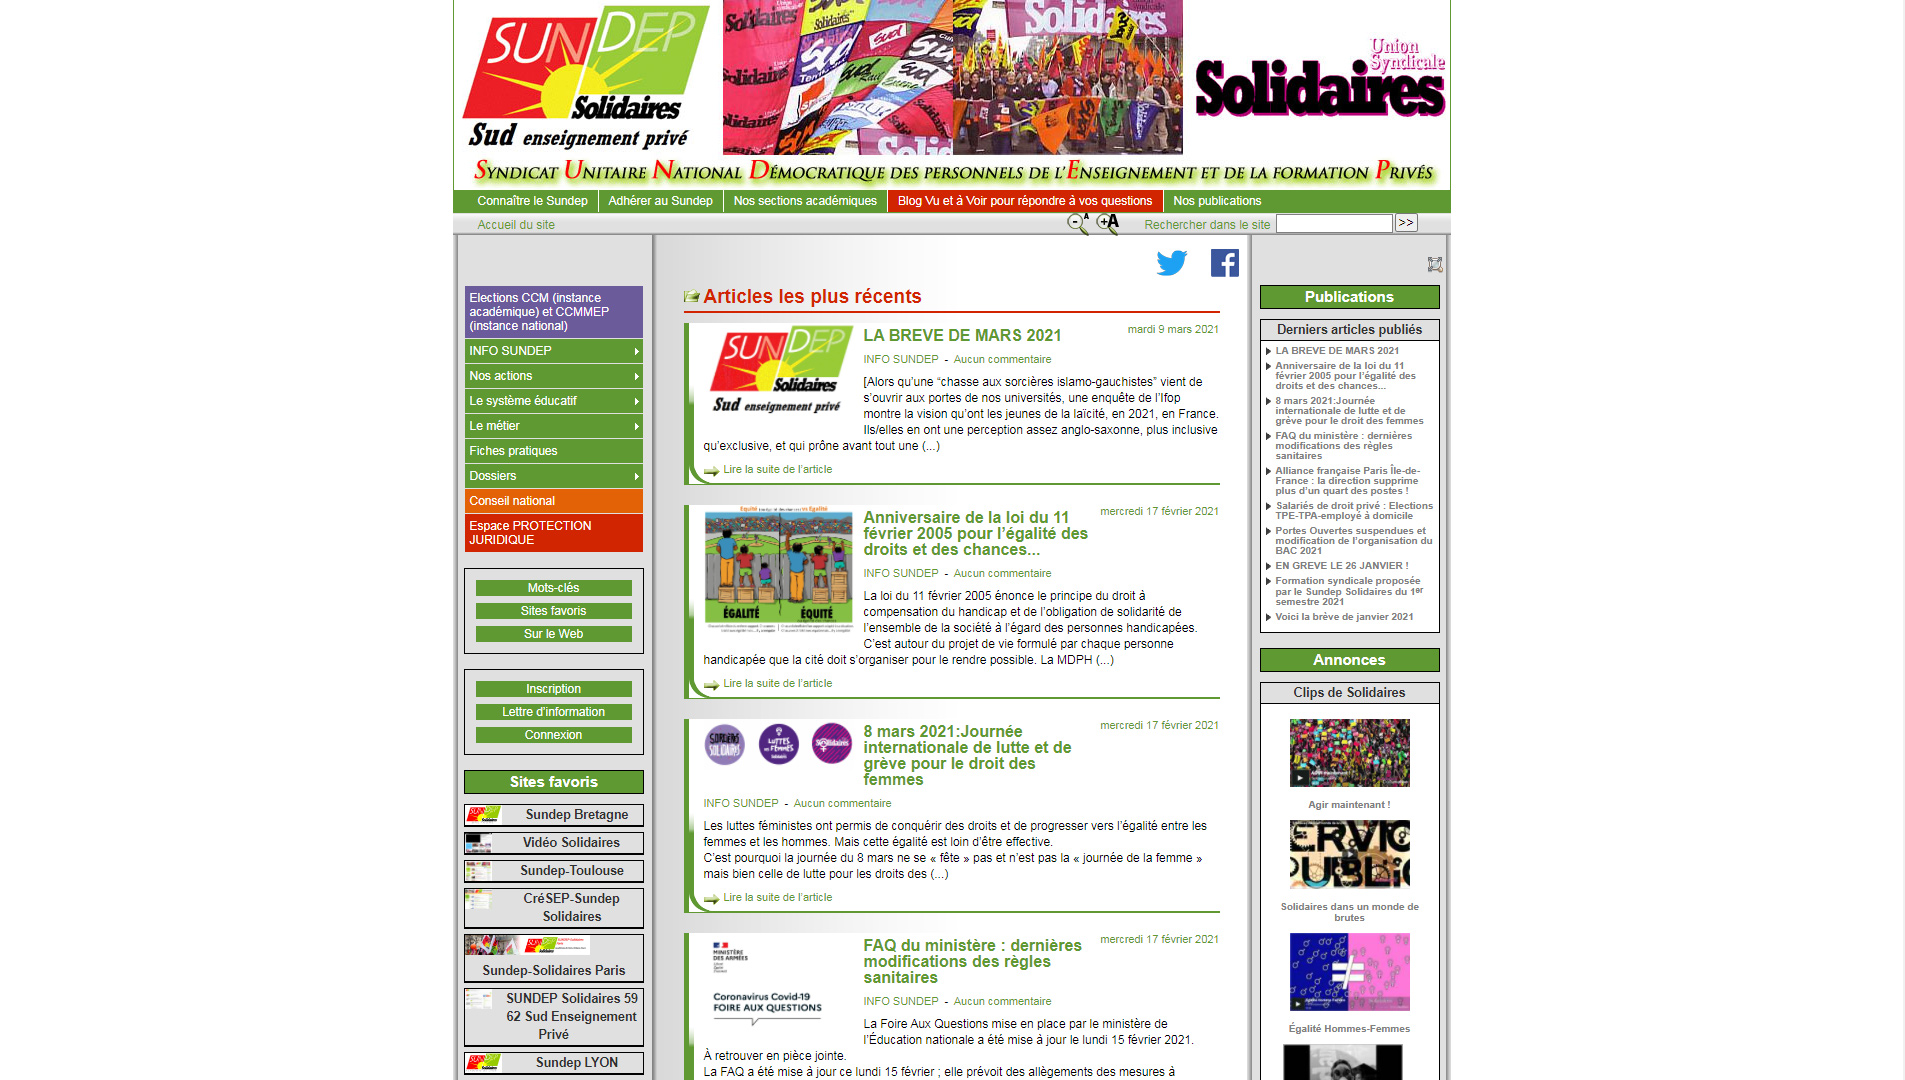 SUNDEP Solidaires